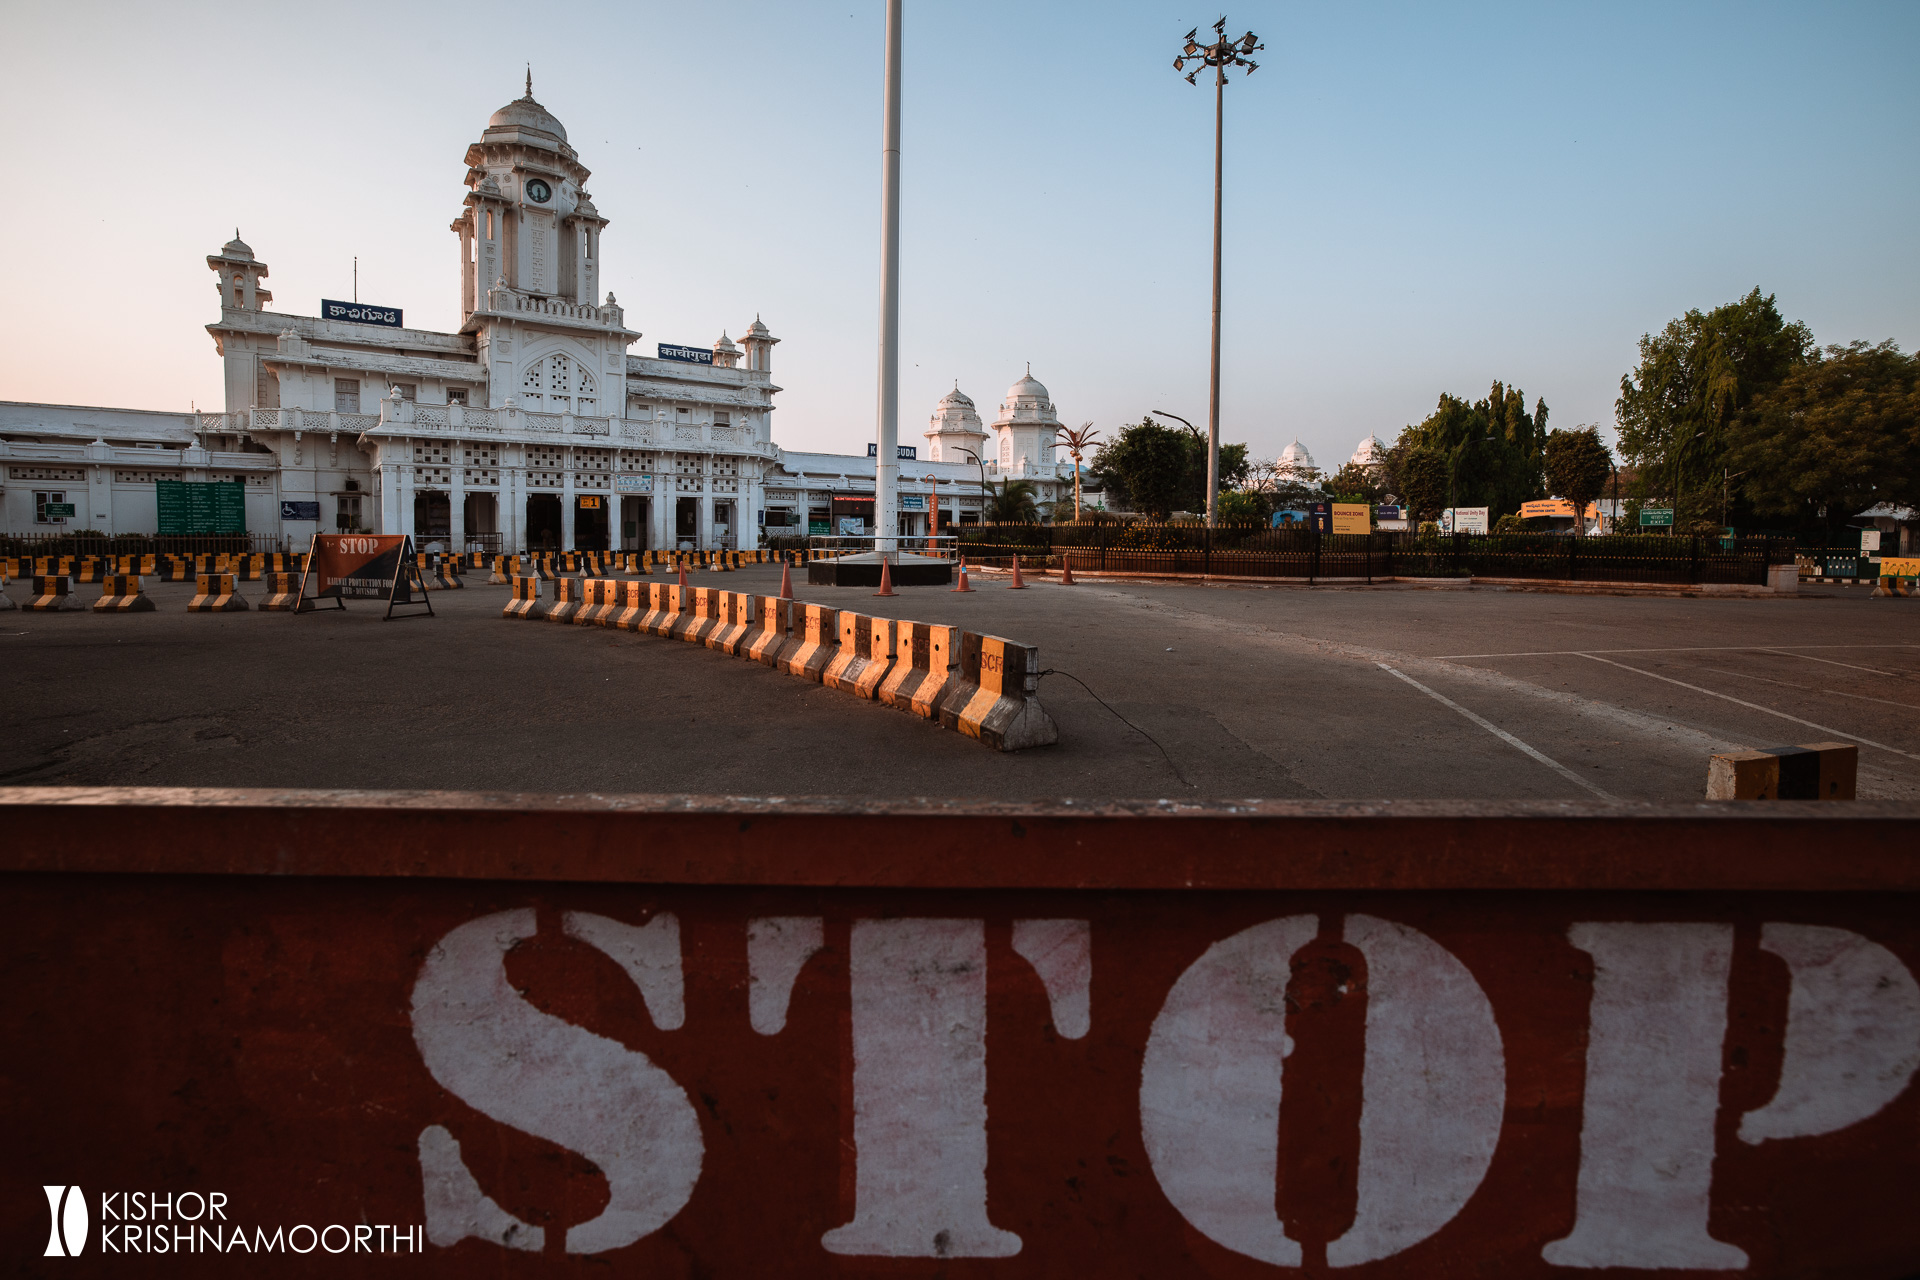 hyderabad-train-railway-station-kacheguda-india-telangana-lockdown-curfew-empty-road